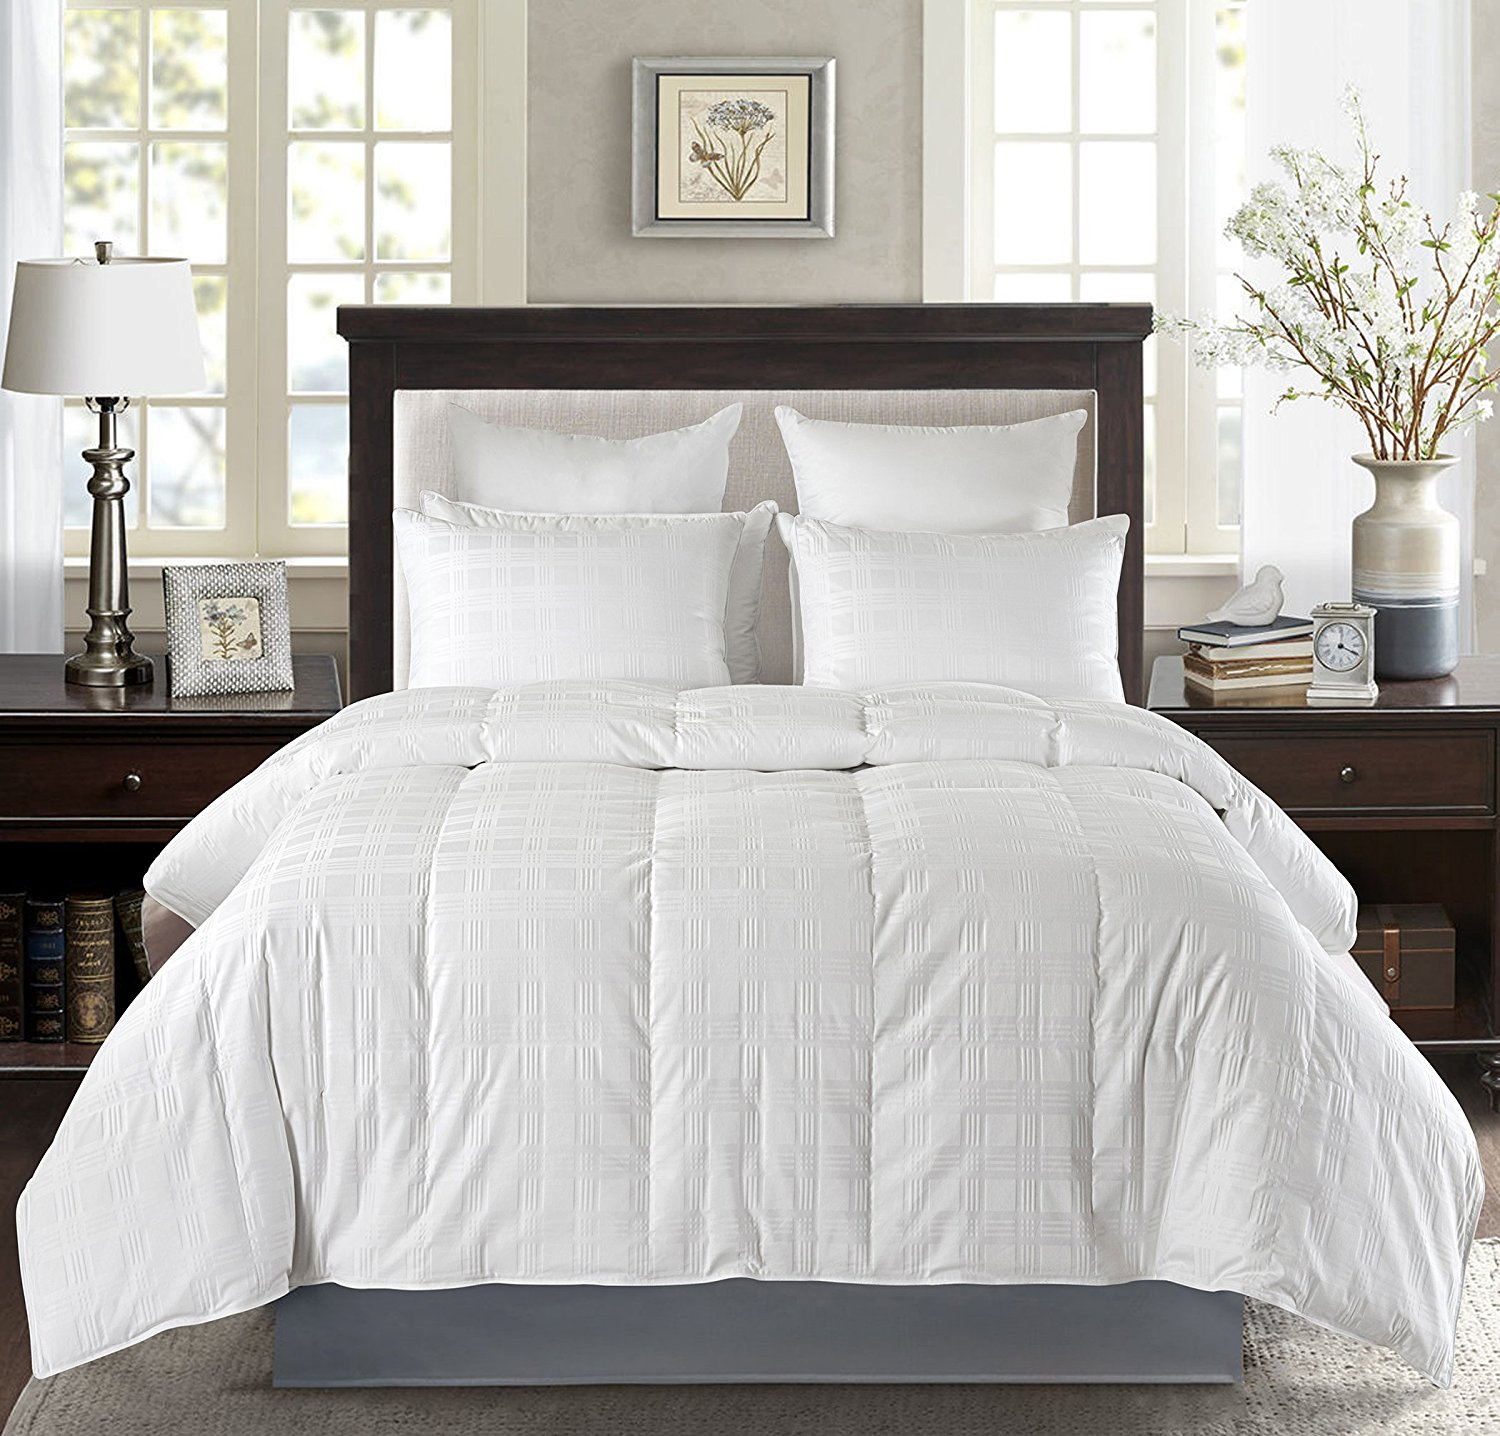 Luxury Baffle Box White Down Comforter,600 Thread Count 650 Fill Power Duvet Insert , White